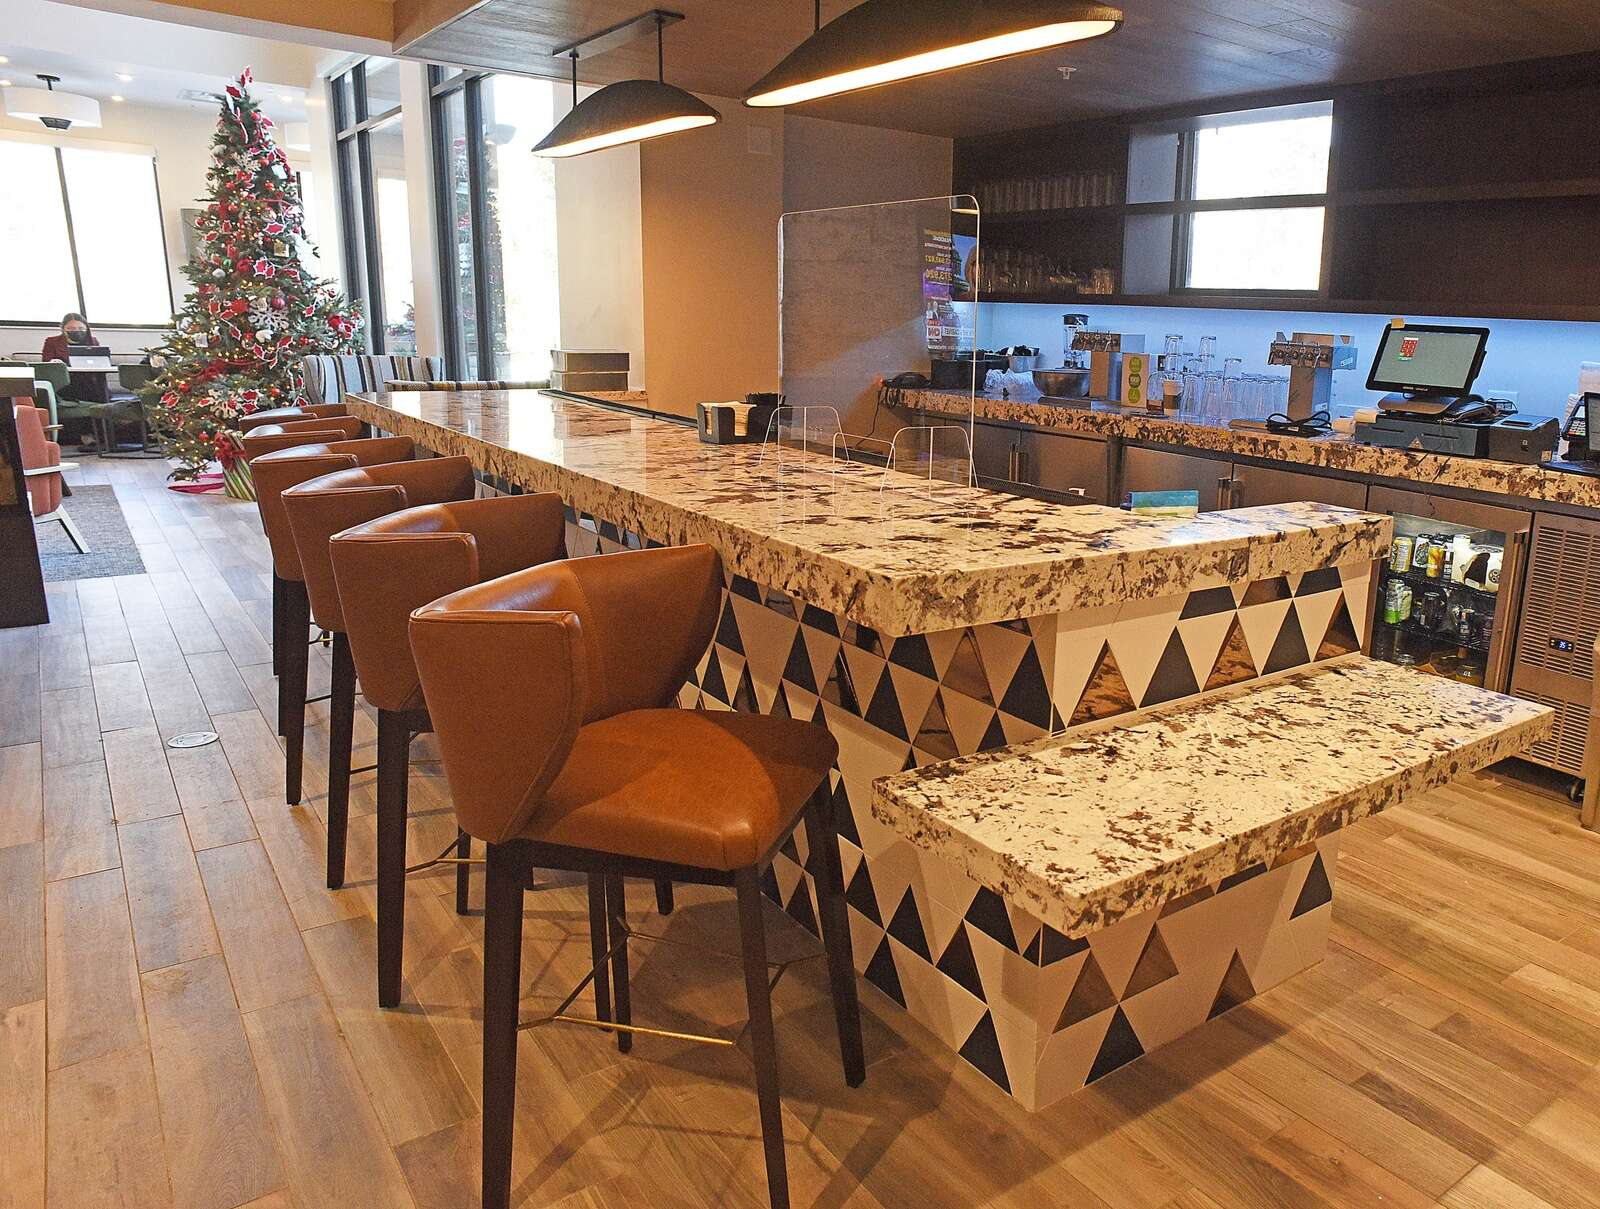 The bar at the new Residence Inn by Marriott will offer locally crafted beer and spirits, including selections from the Steamboat Whiskey Company and Storm Peak Brewery among others. (Photo by John F. Russell)